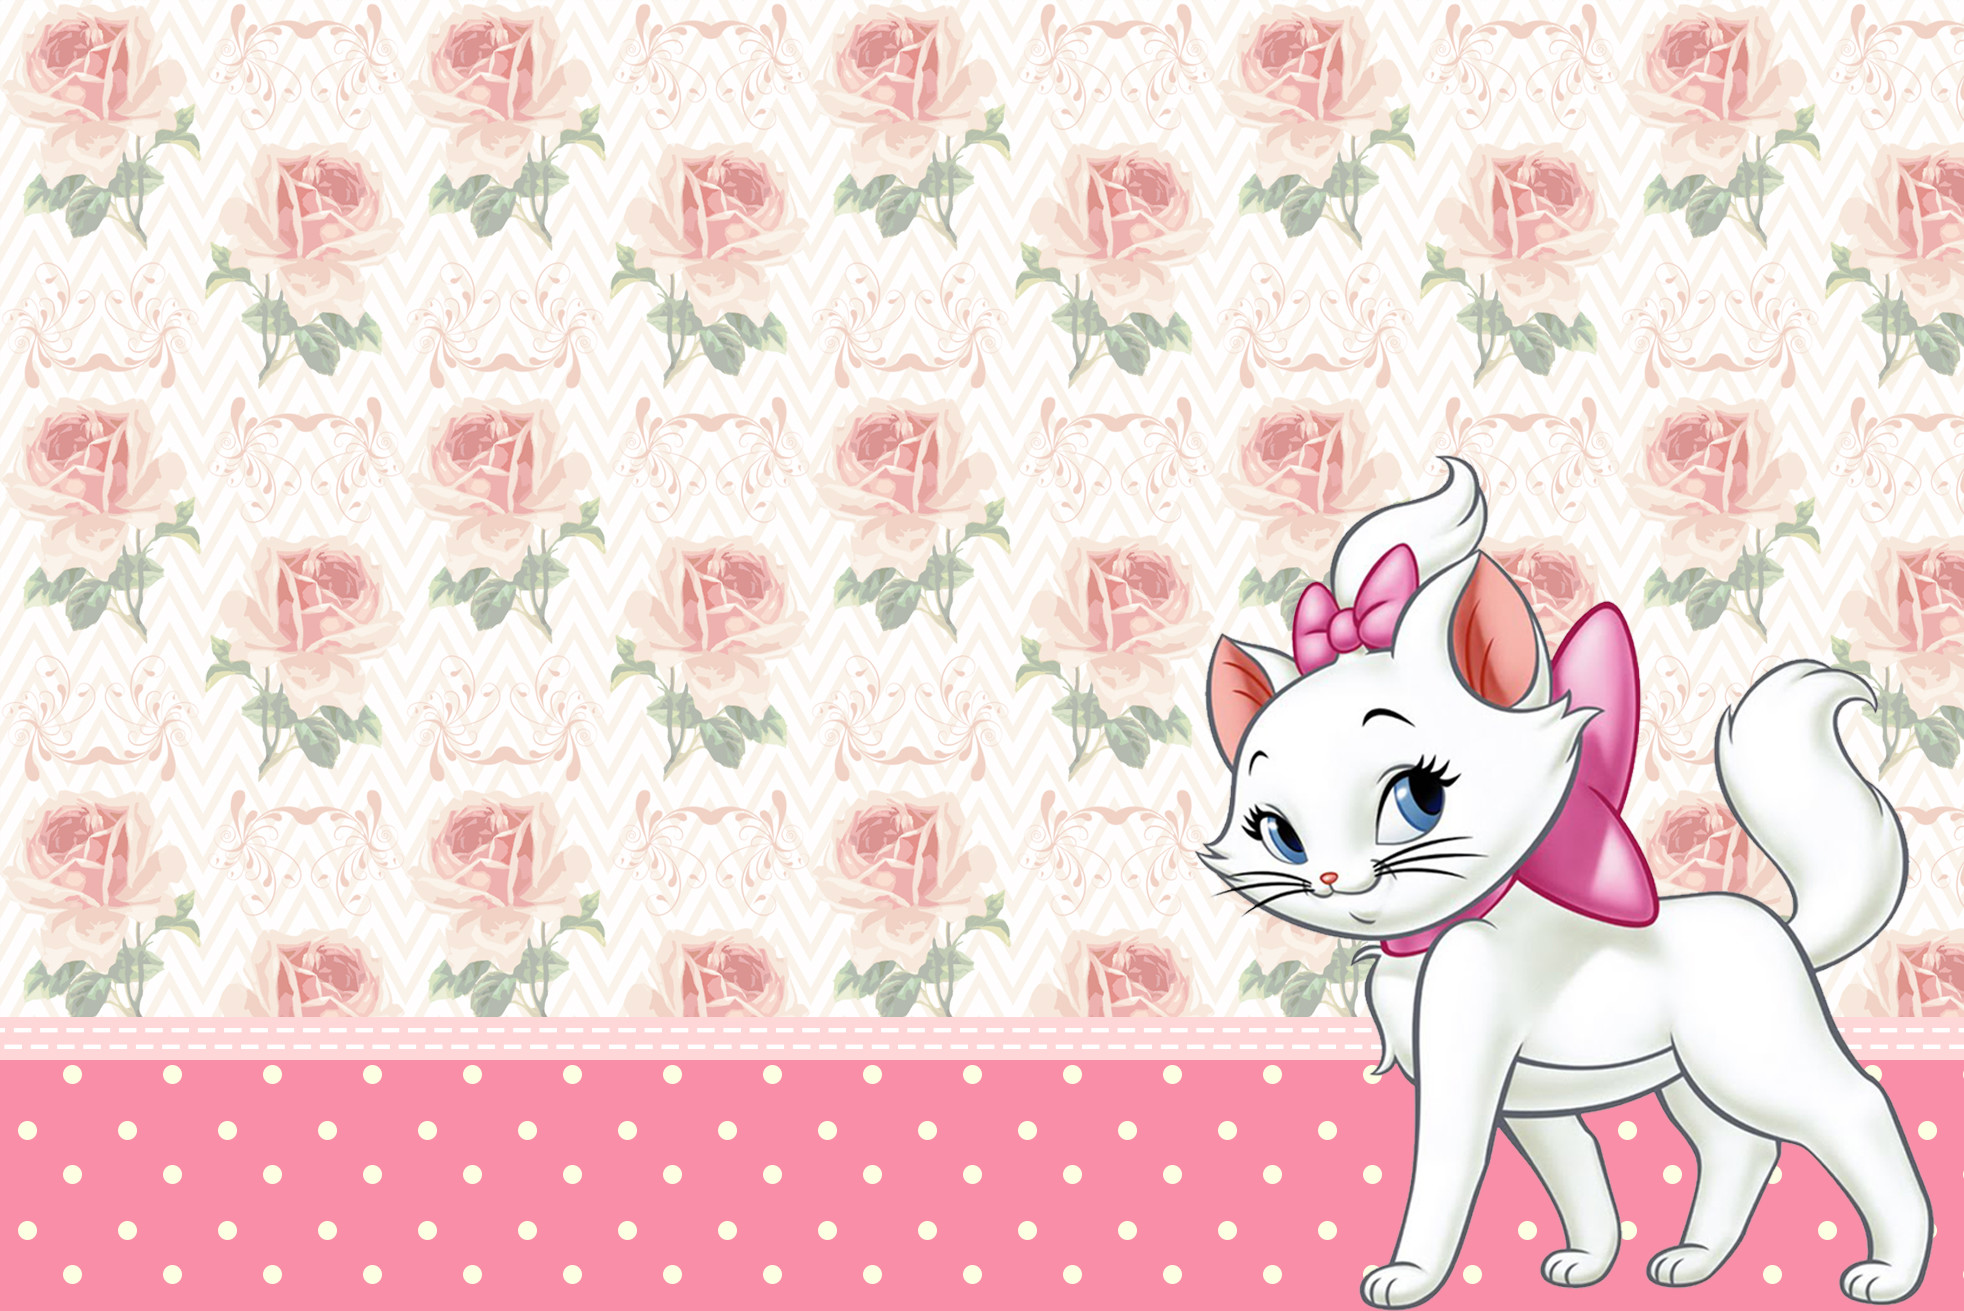 Cute Hello Kitty Wallpaper Cell Phone Marie Aristocats Wallpaper 183 ① Wallpapertag